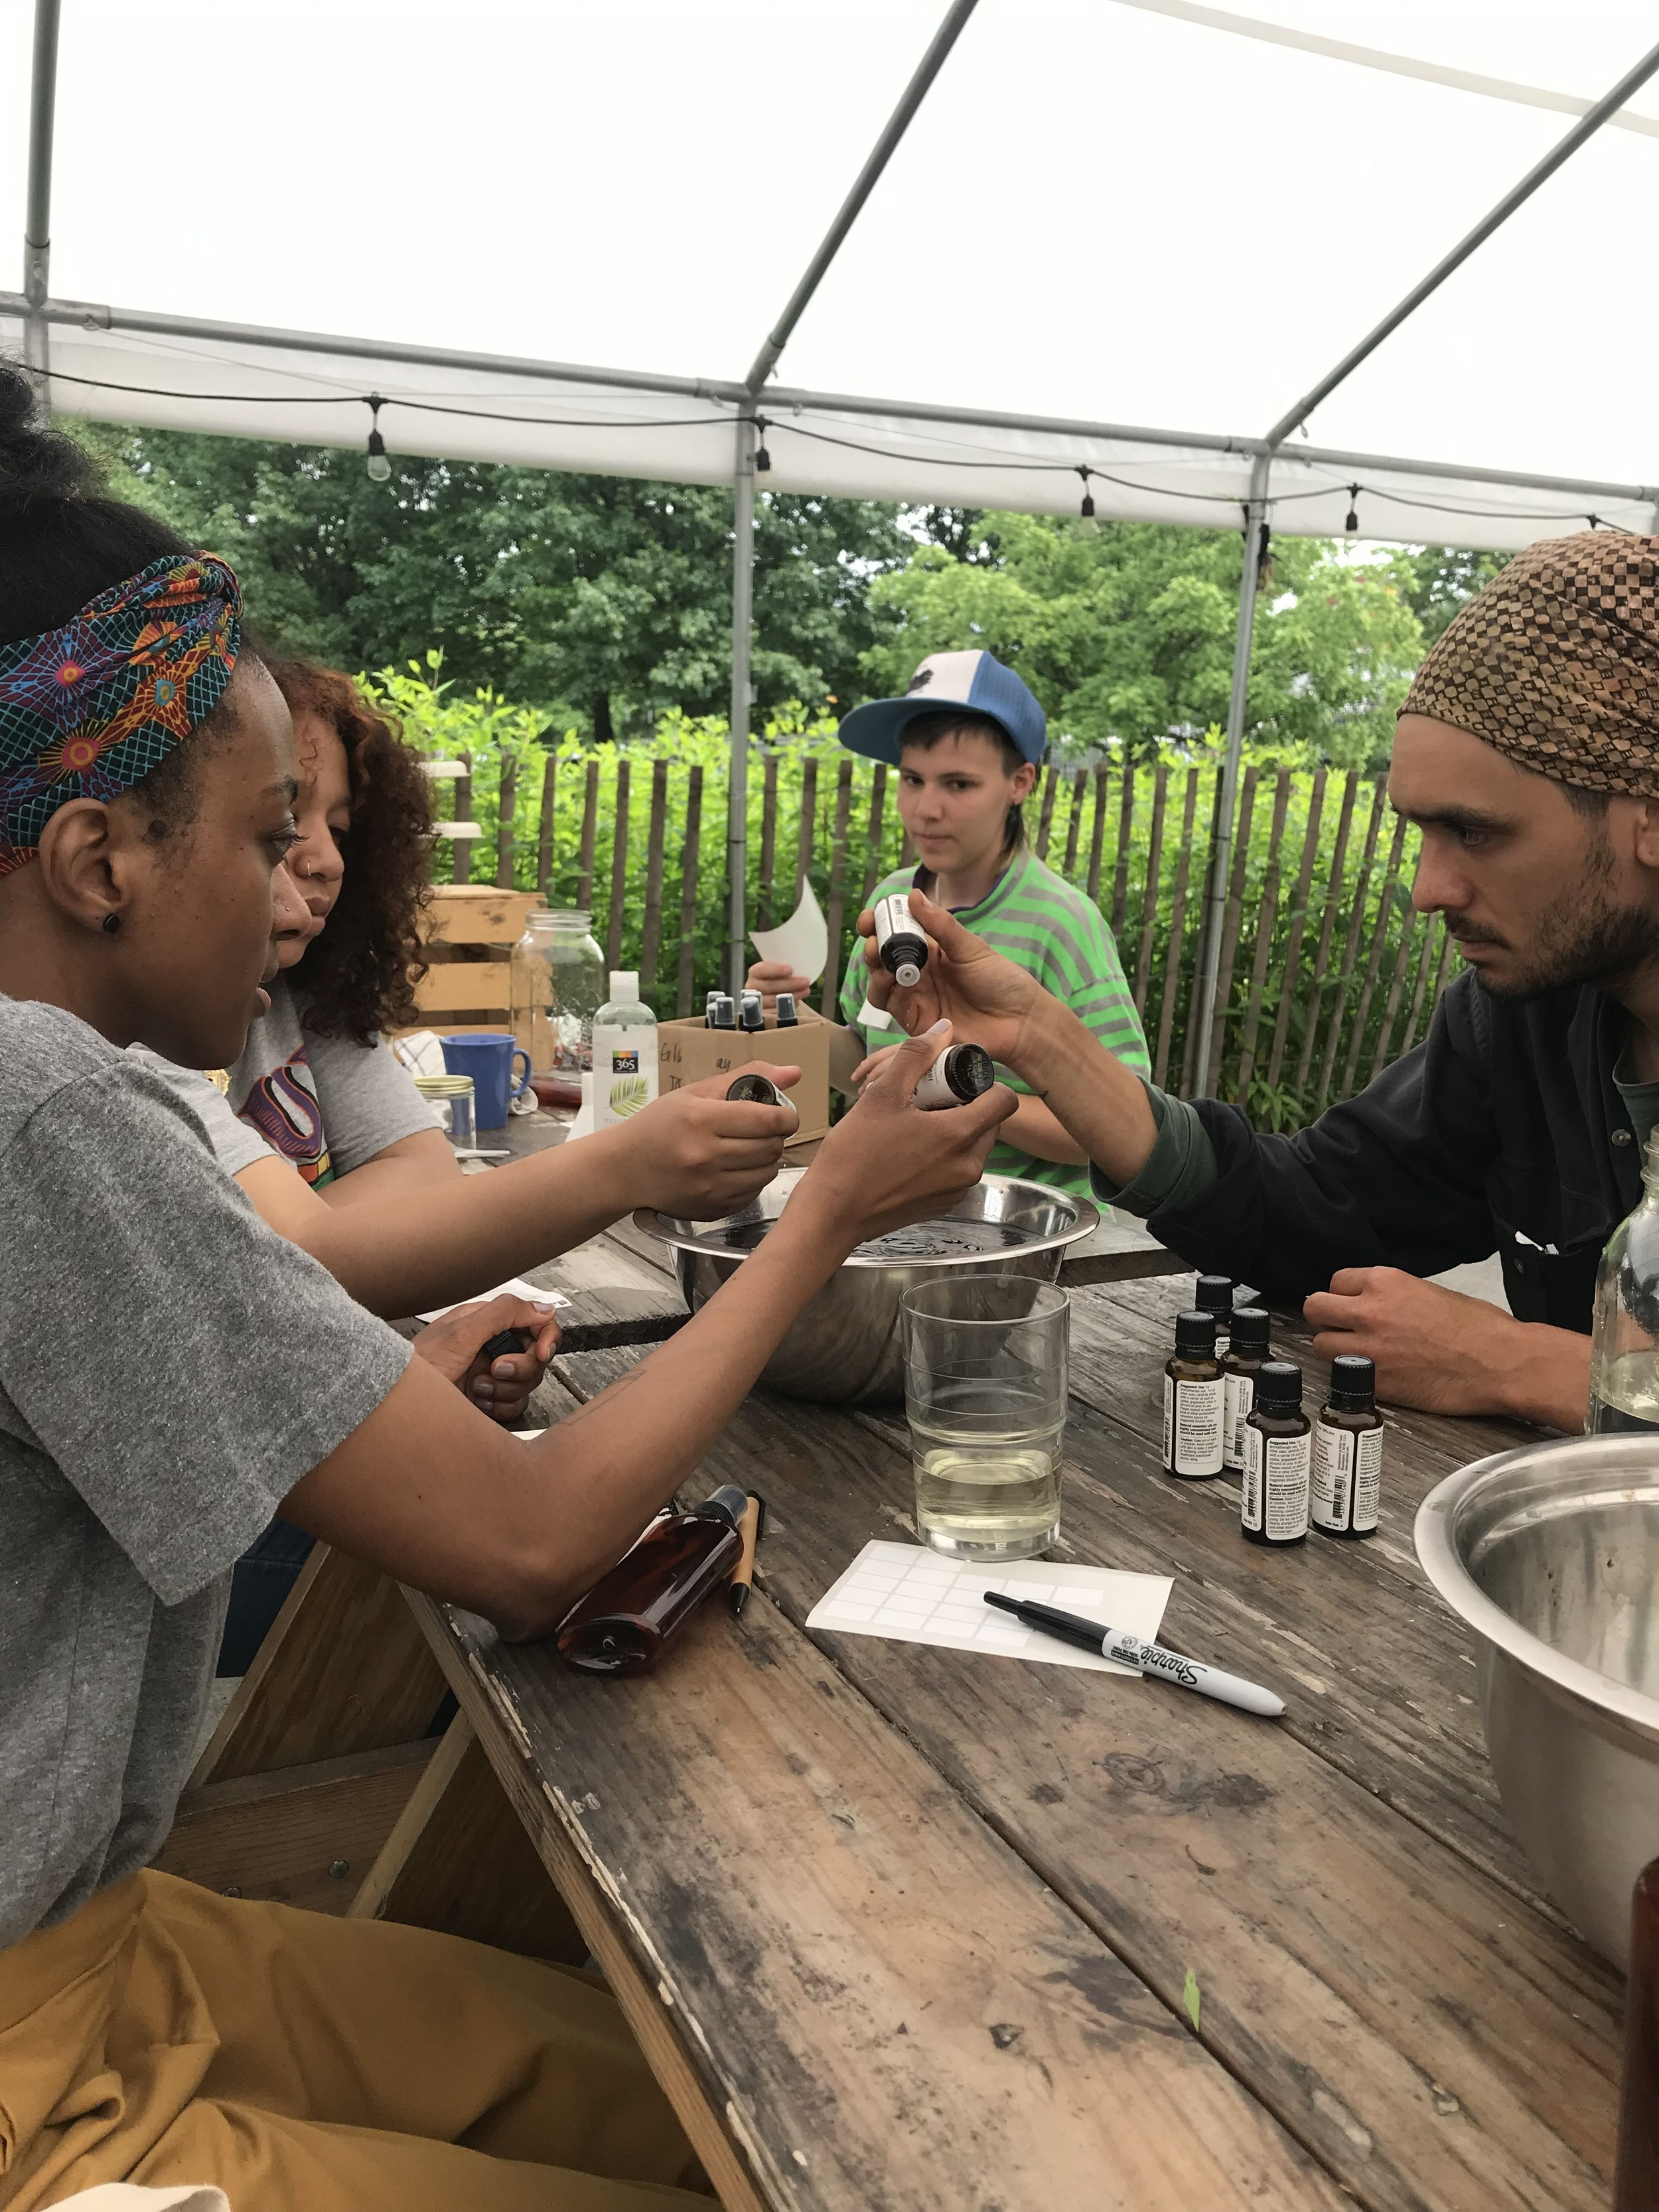 Look at the concentration on our faces as we are pouring the exact amount of essential oil drops needed!  Photo credit: David M. Alvarez